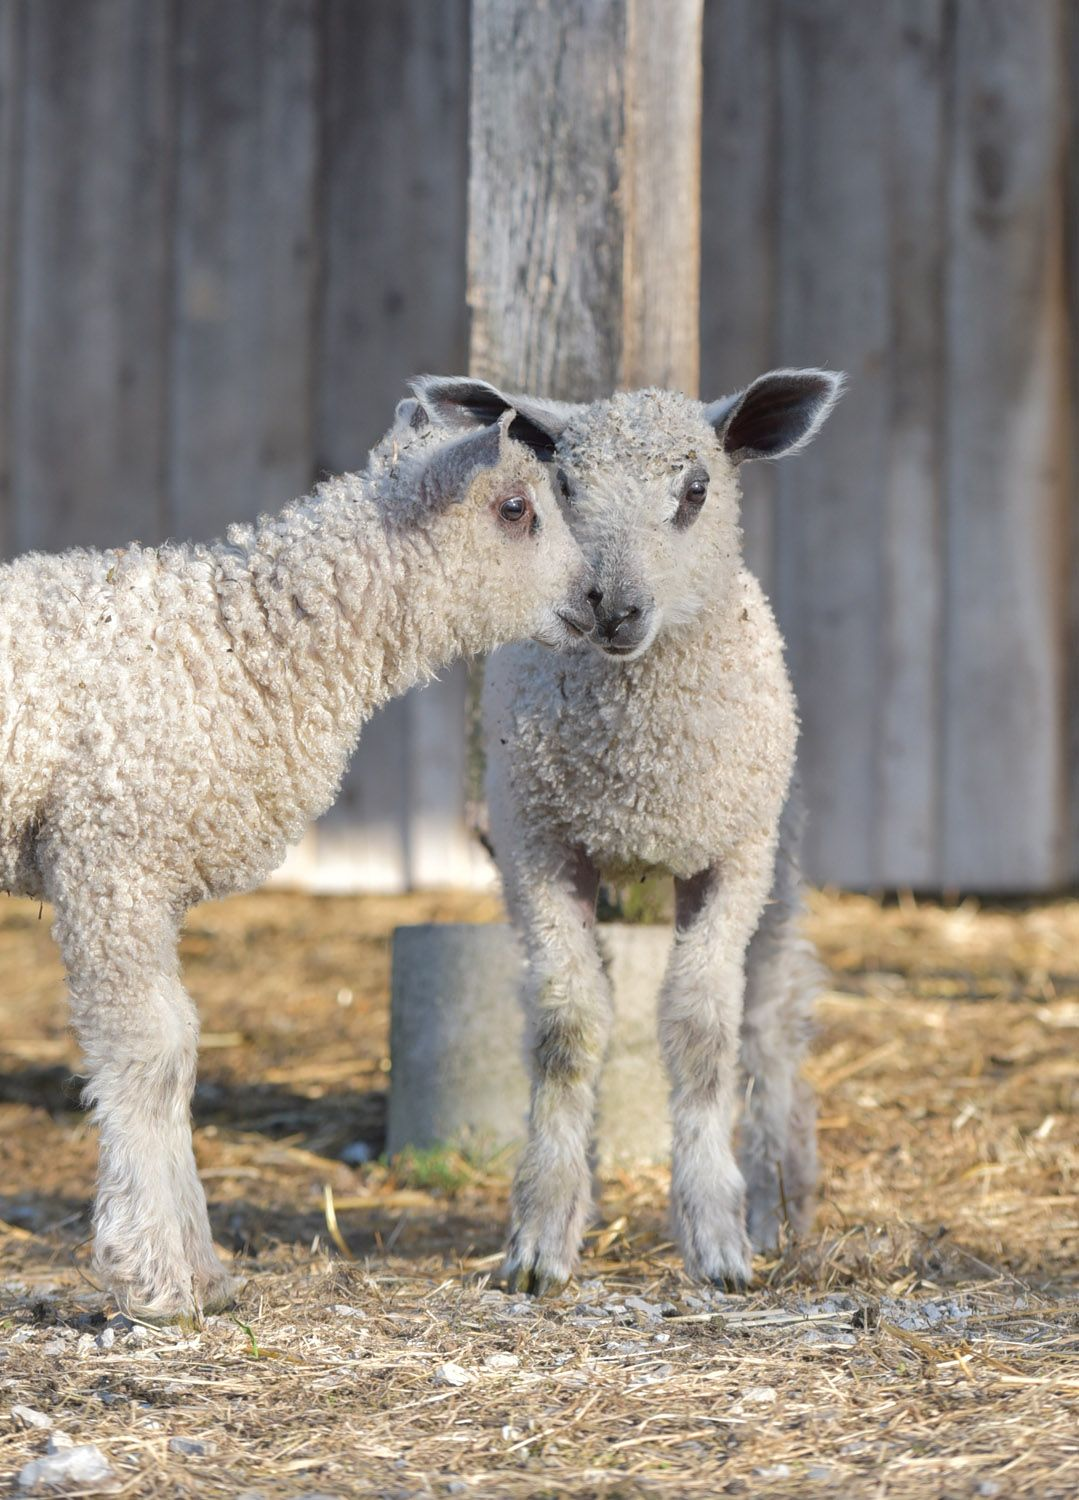 These Sweet Lambs Are From Tanglewood Farm In Versailles Kentucky They Are Wensleydale Bluefaced Leicester Pronounced Lester Lamb Animals Sheep And Lamb